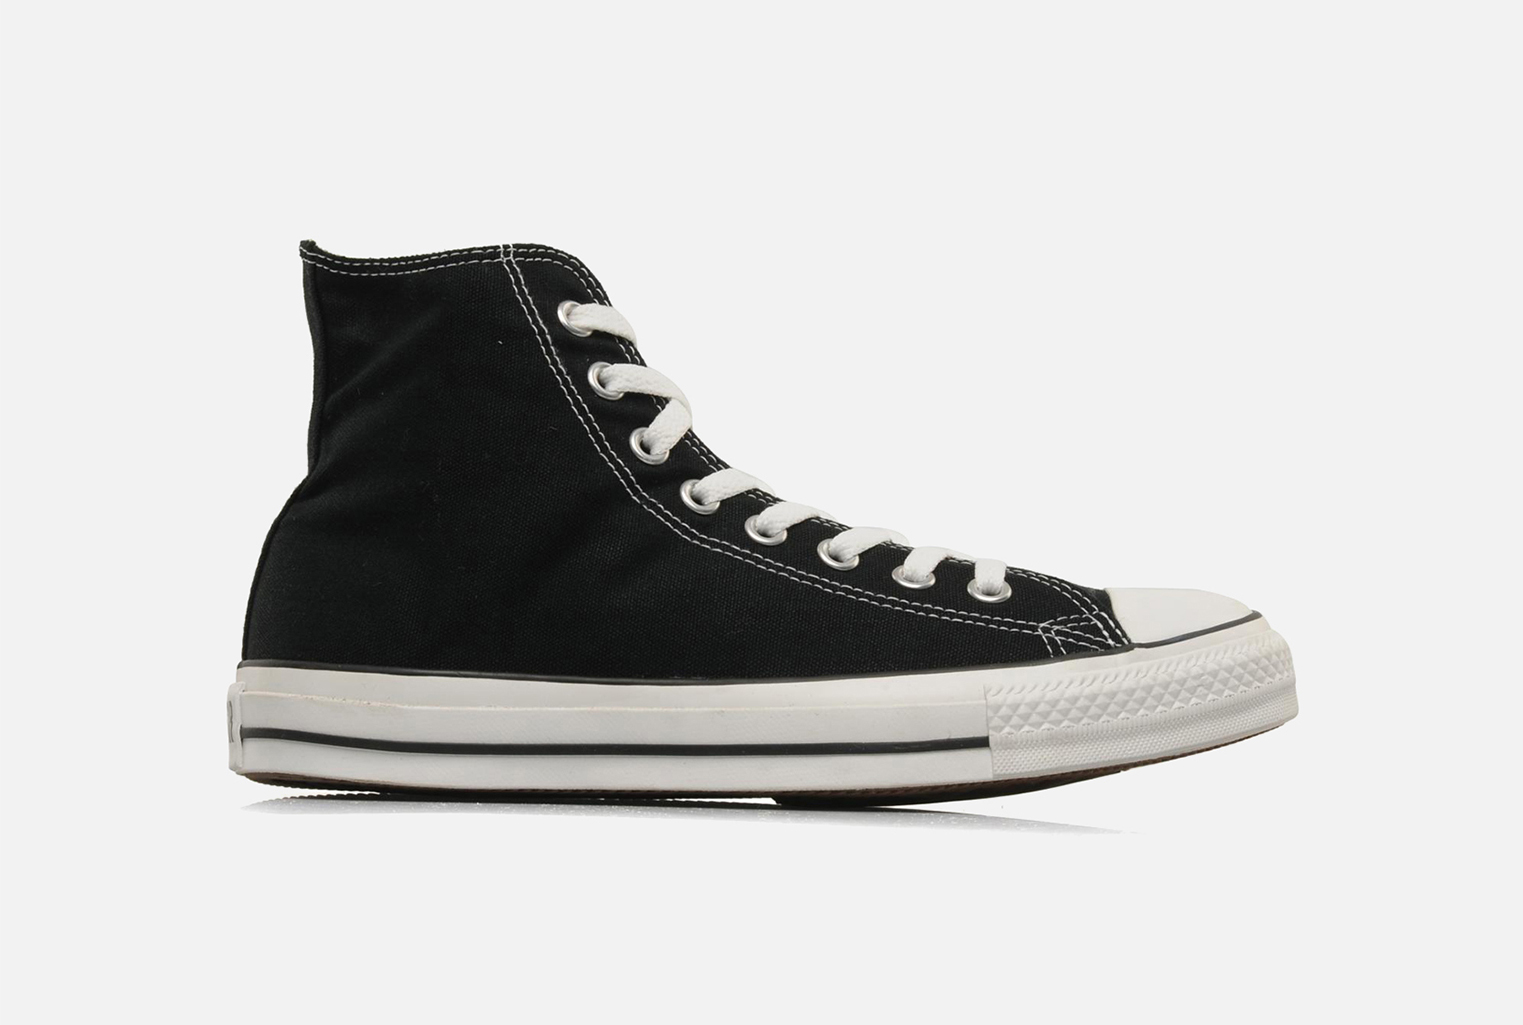 Confortable Converse Haute Chuck Taylor All Star Femme